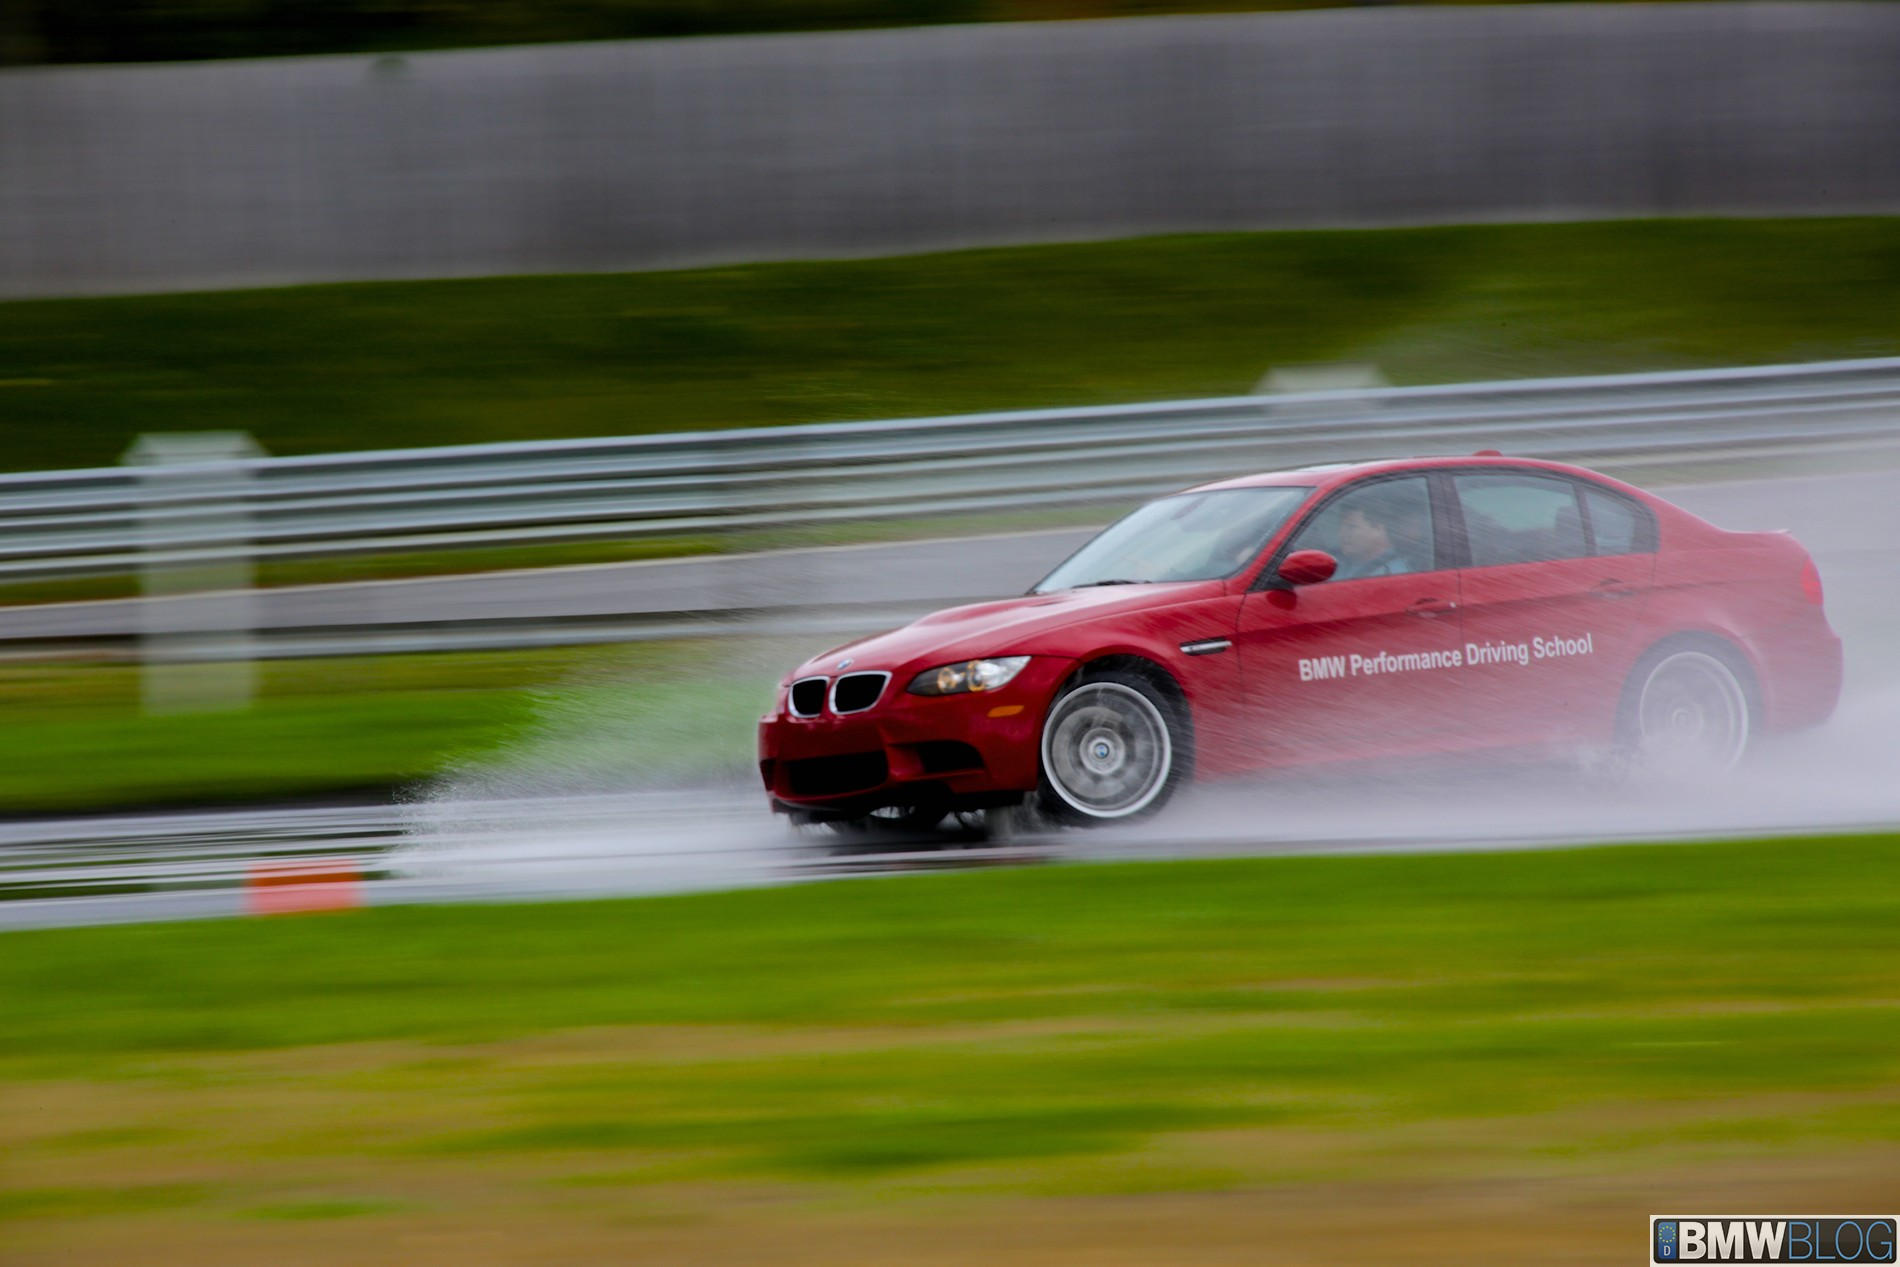 BMW Performance Driving School Lime Rock Park 211